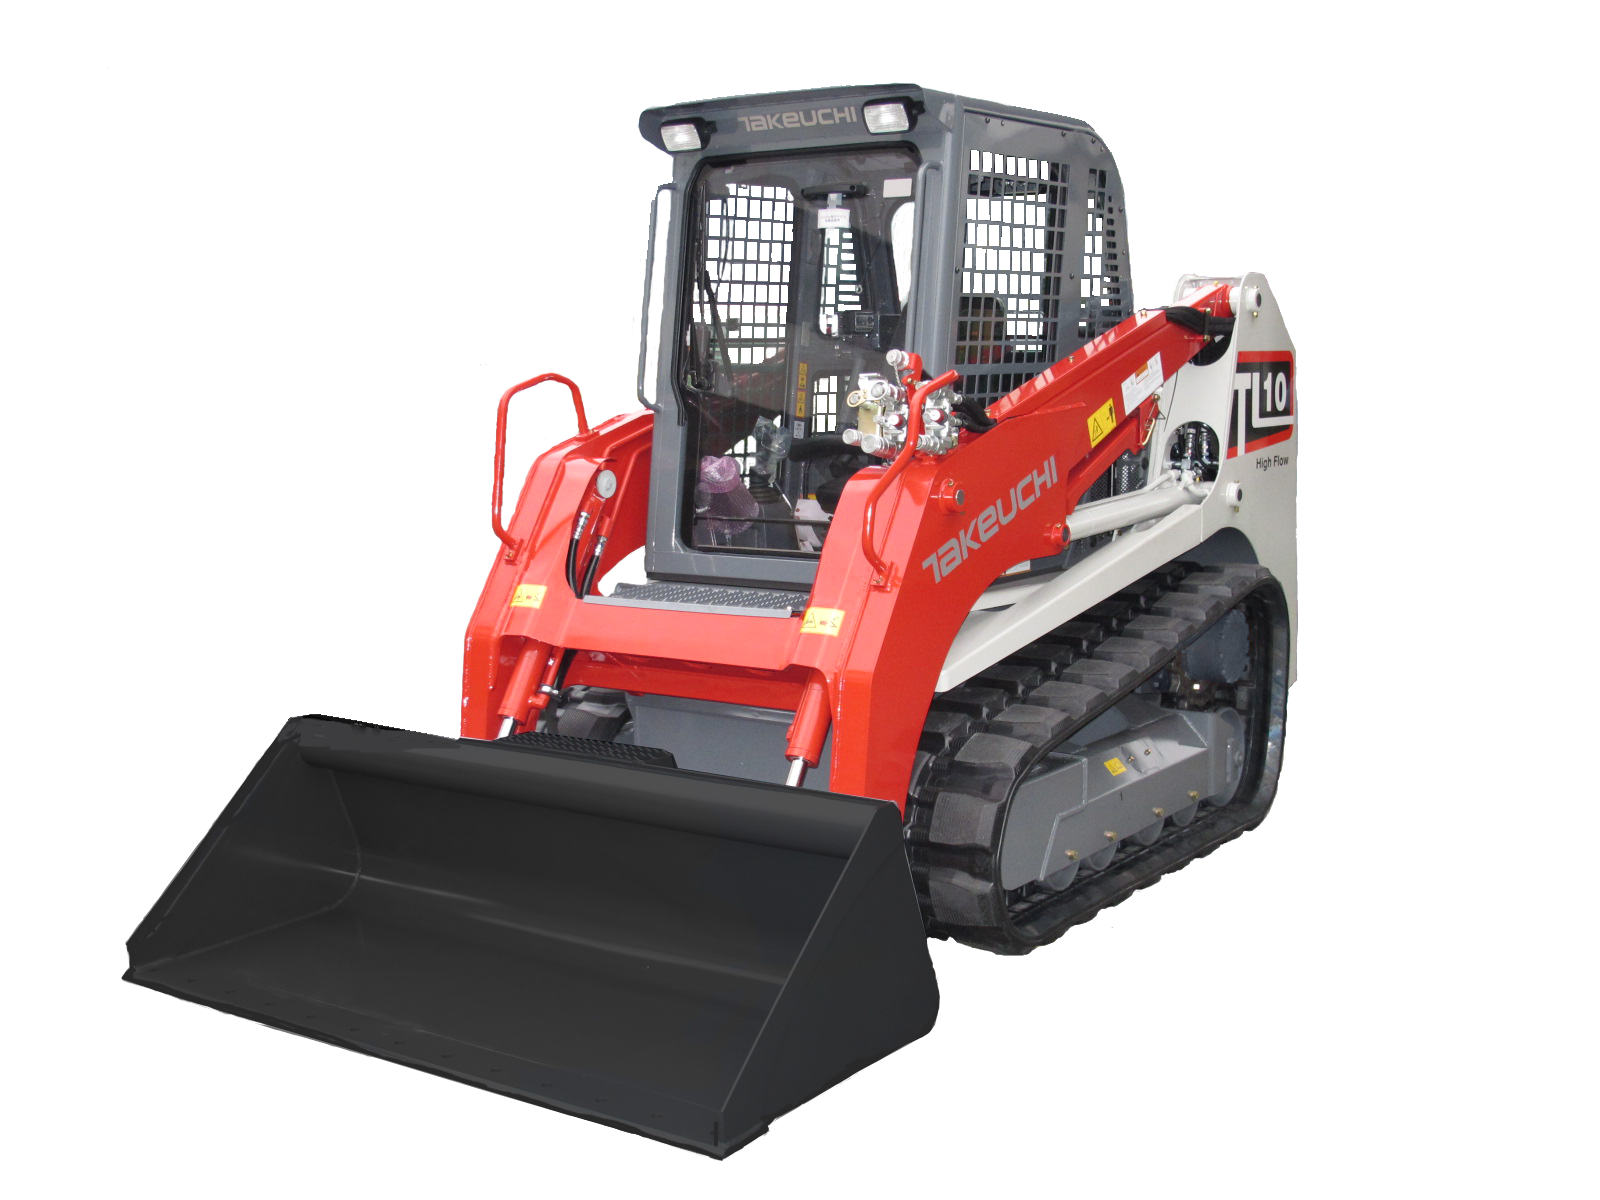 Takeuchi announces TL10 and TL12 compact track loaders ...